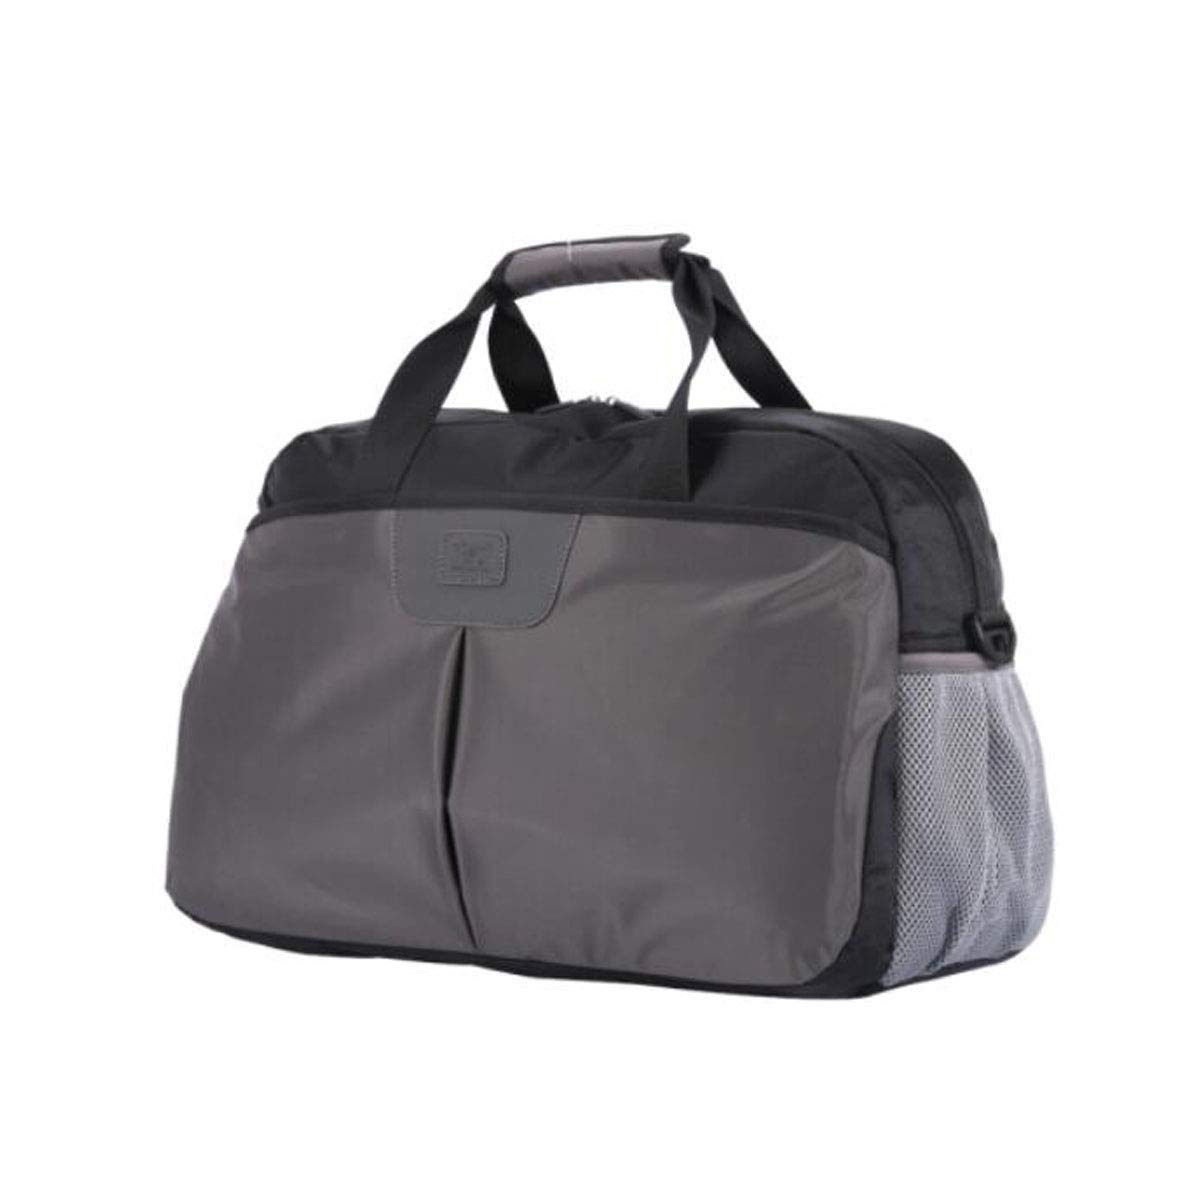 Fitness Bag, Multi-Function Large Capacity Business Short-Distance Travel Bag, Gray Size: 49 * 17 * 32cm (Color : Gray)